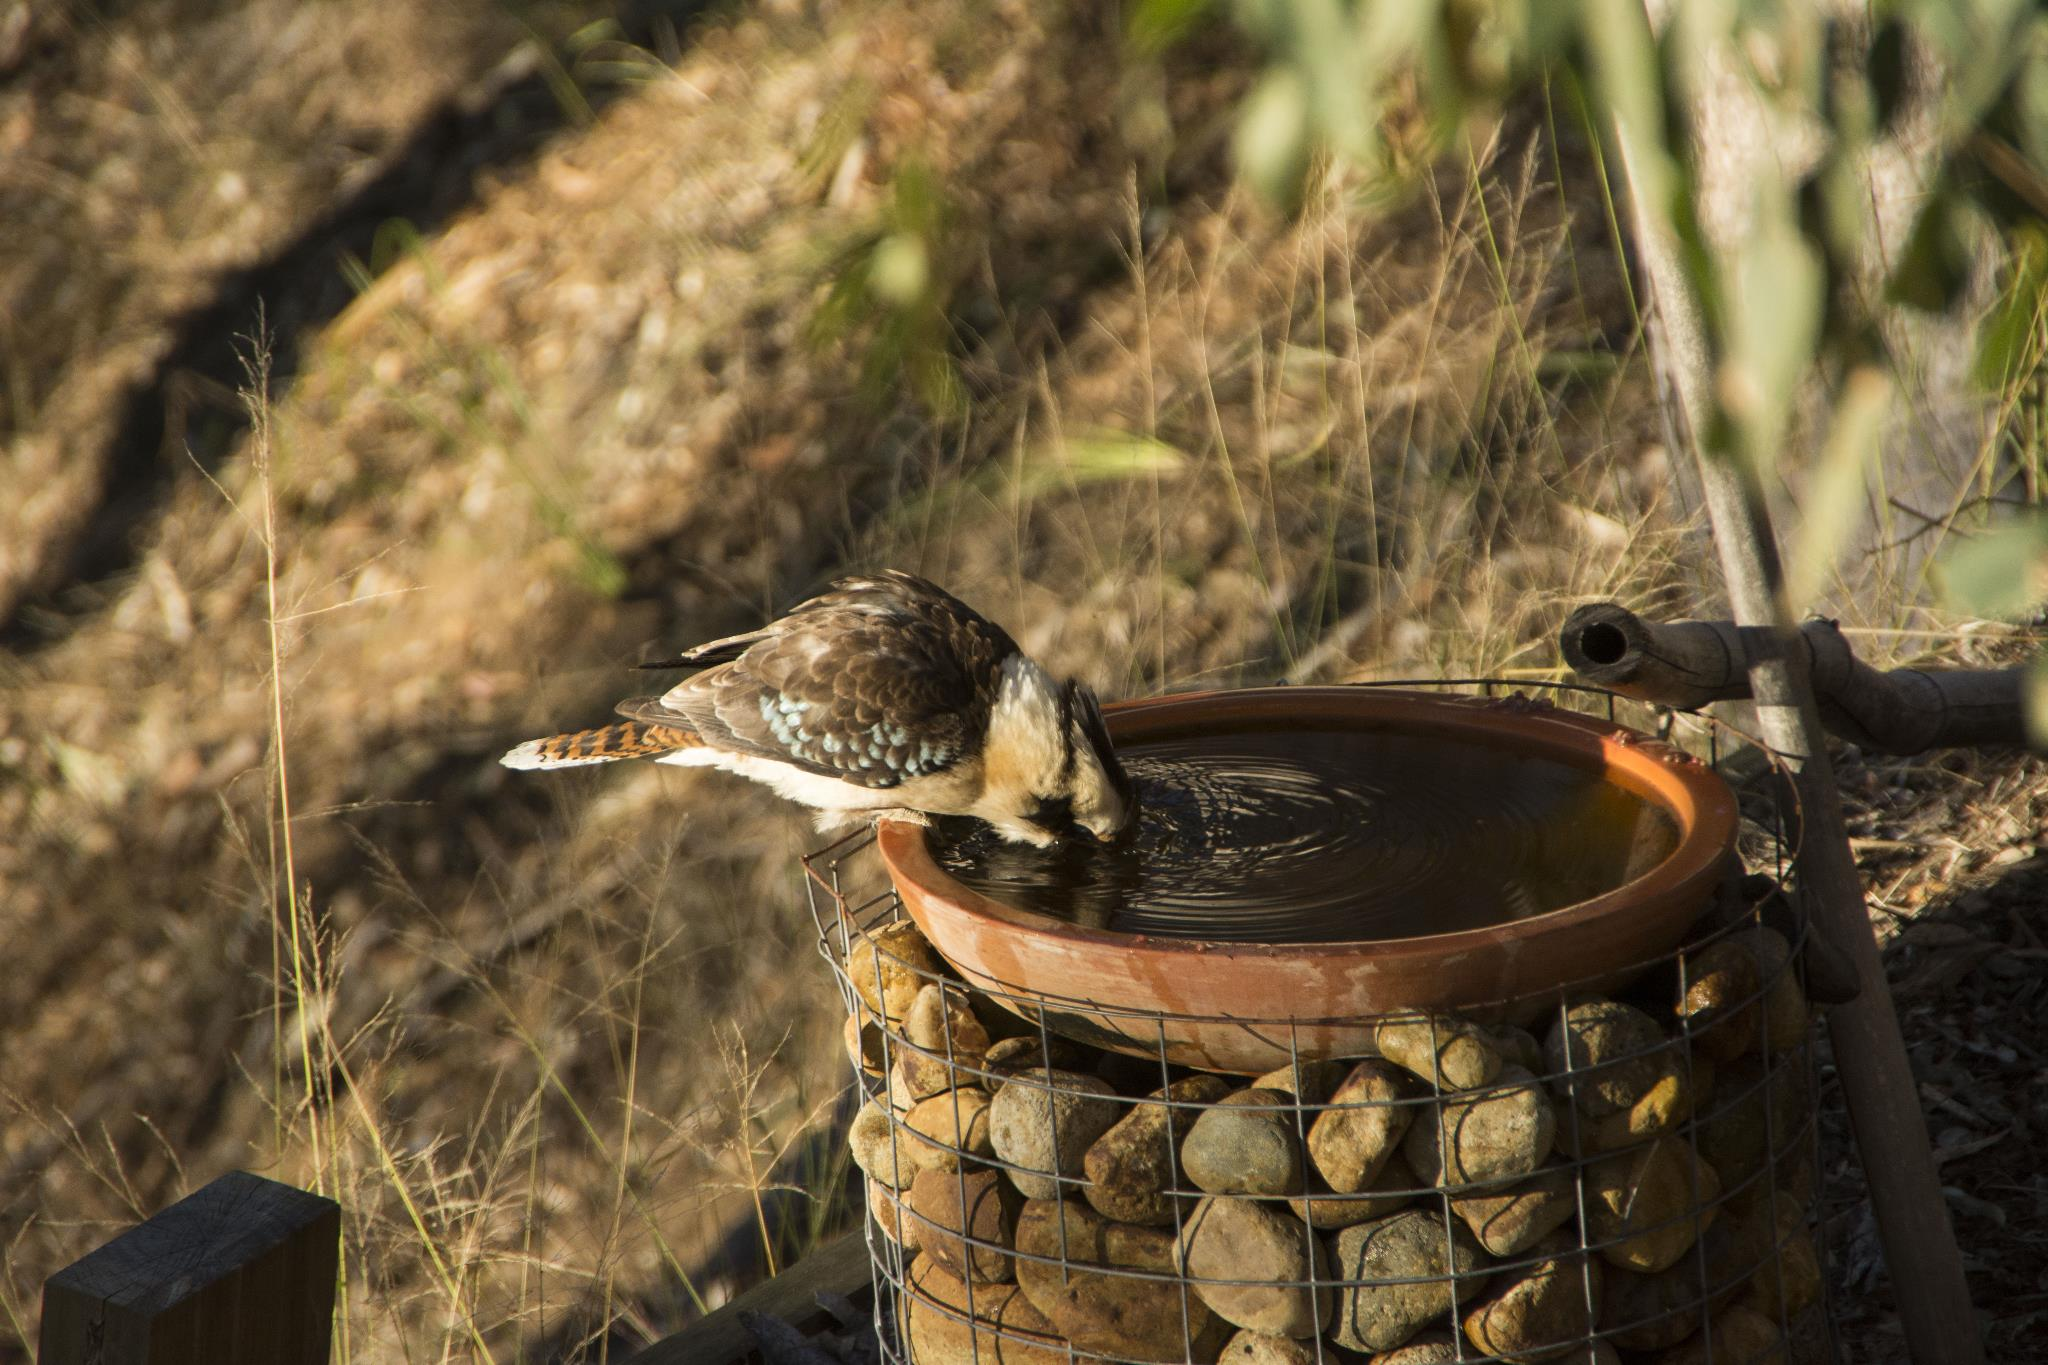 Laughing Kookaburra dipping his head in the bath